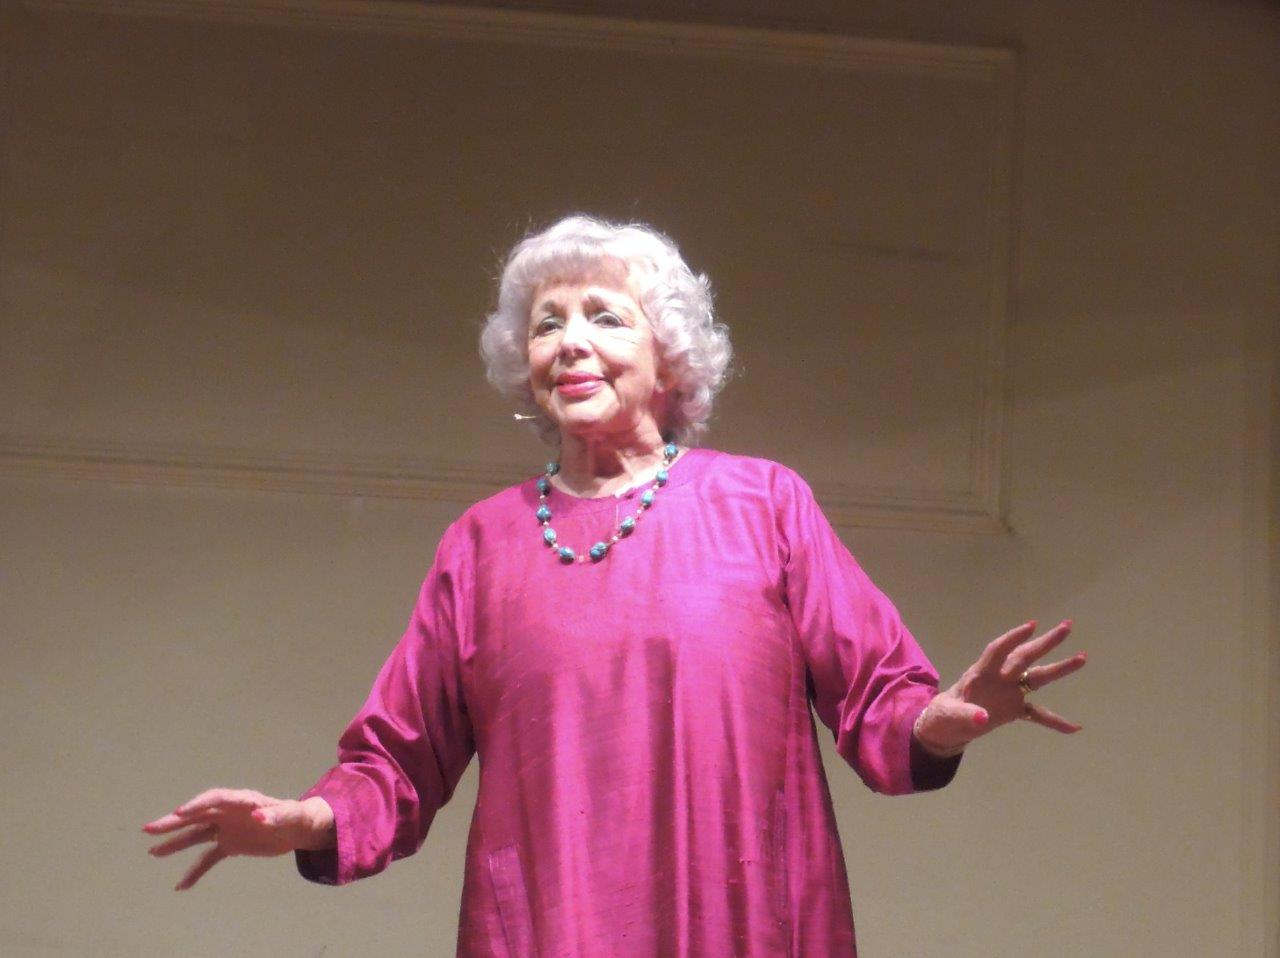 A review of Thelma Ruby's one-woman show as a gift to the Spiro Ark